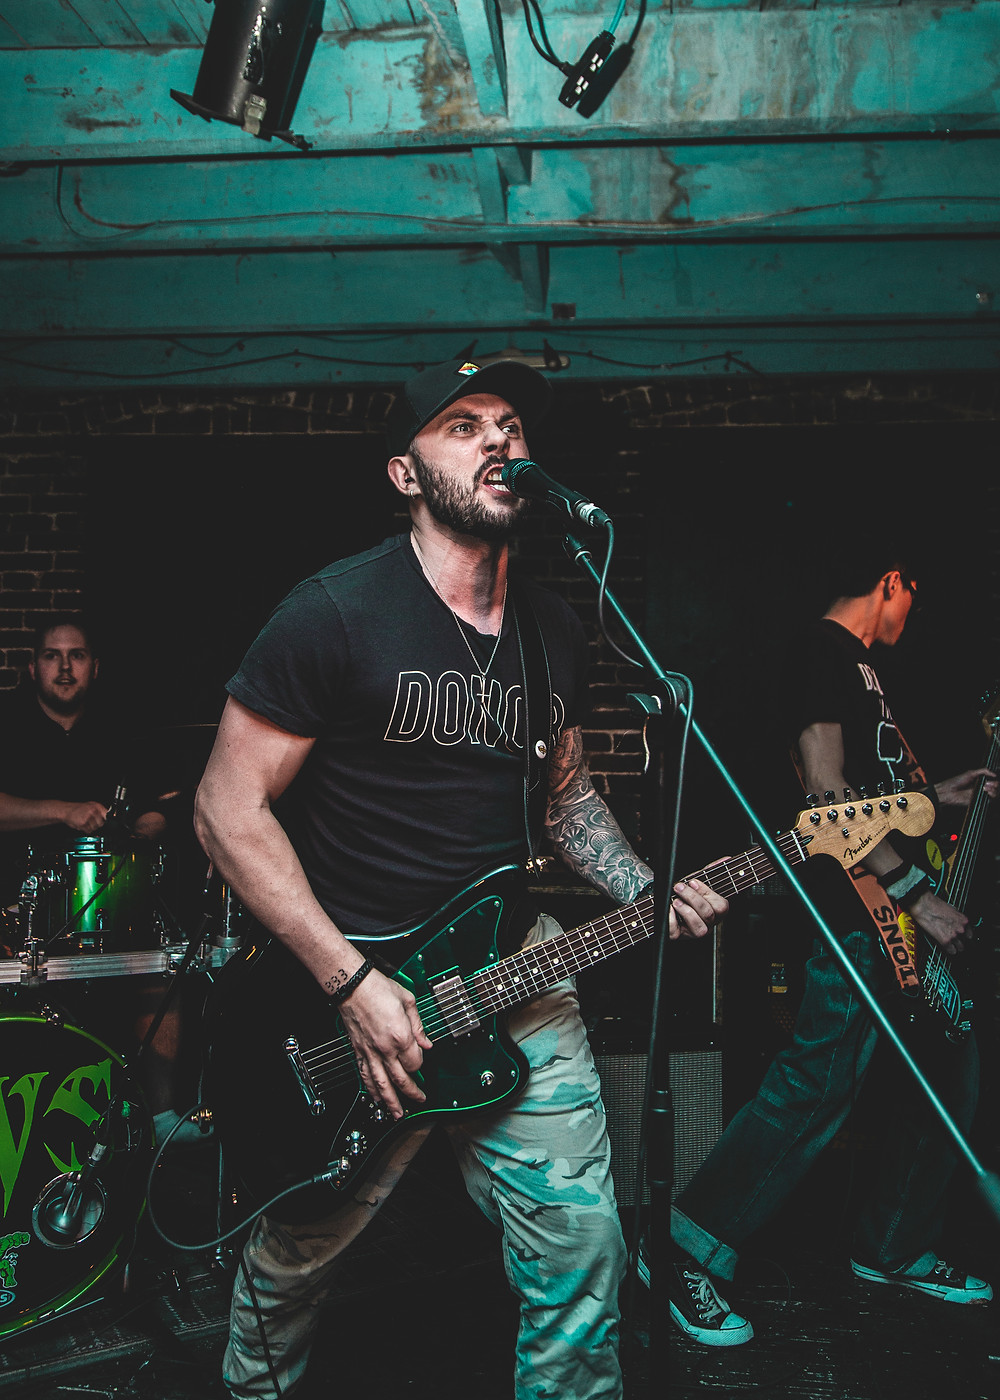 Canadian Pop Punk Band Wasting Time